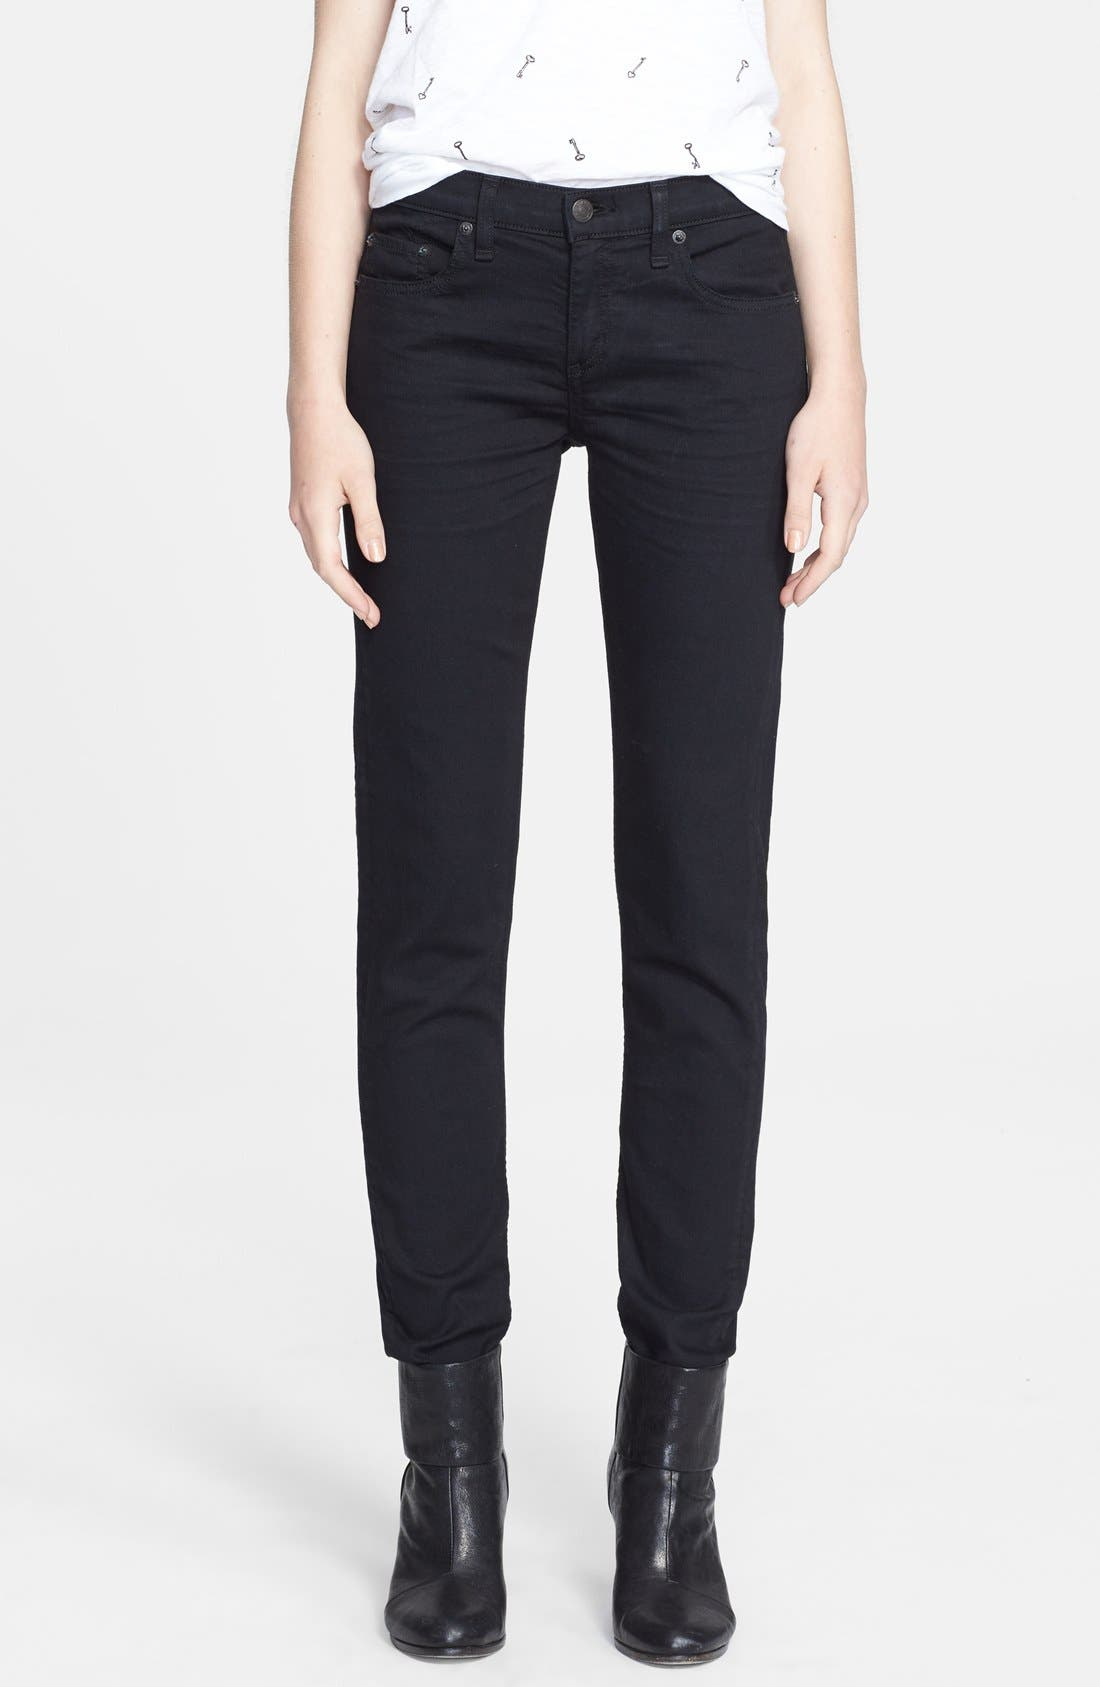 Alternate Image 1 Selected - rag & bone/JEAN 'The Dre' Skinny Jeans (Aged Black)